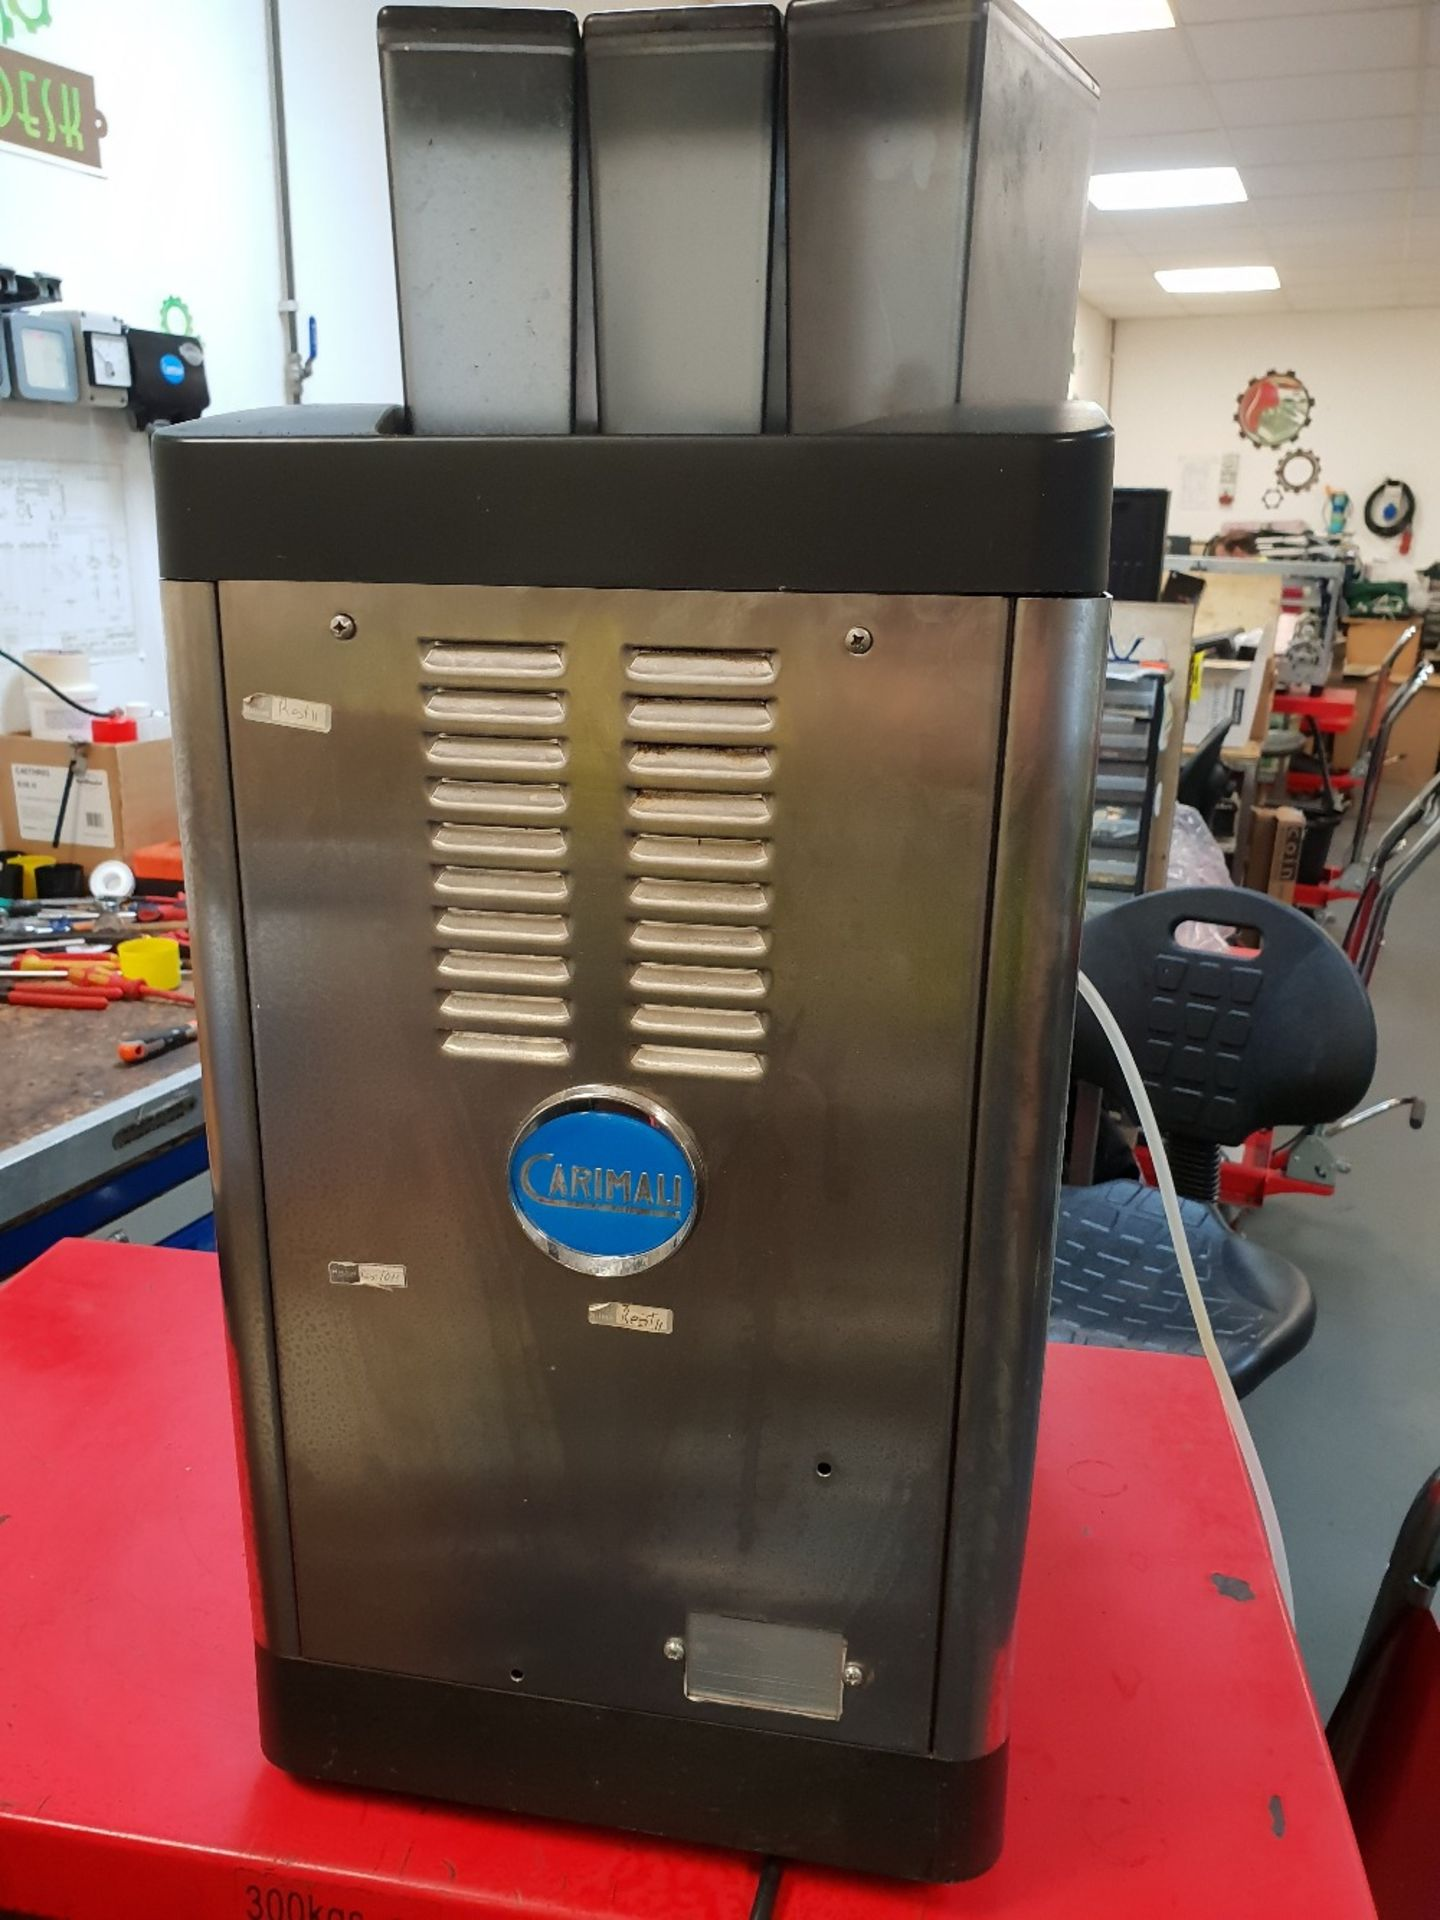 Lot 10 - Carimali Solar Touch Drinks Machine – Bean to cup Coffee + Chocolate & Other DrinksThe Carimali